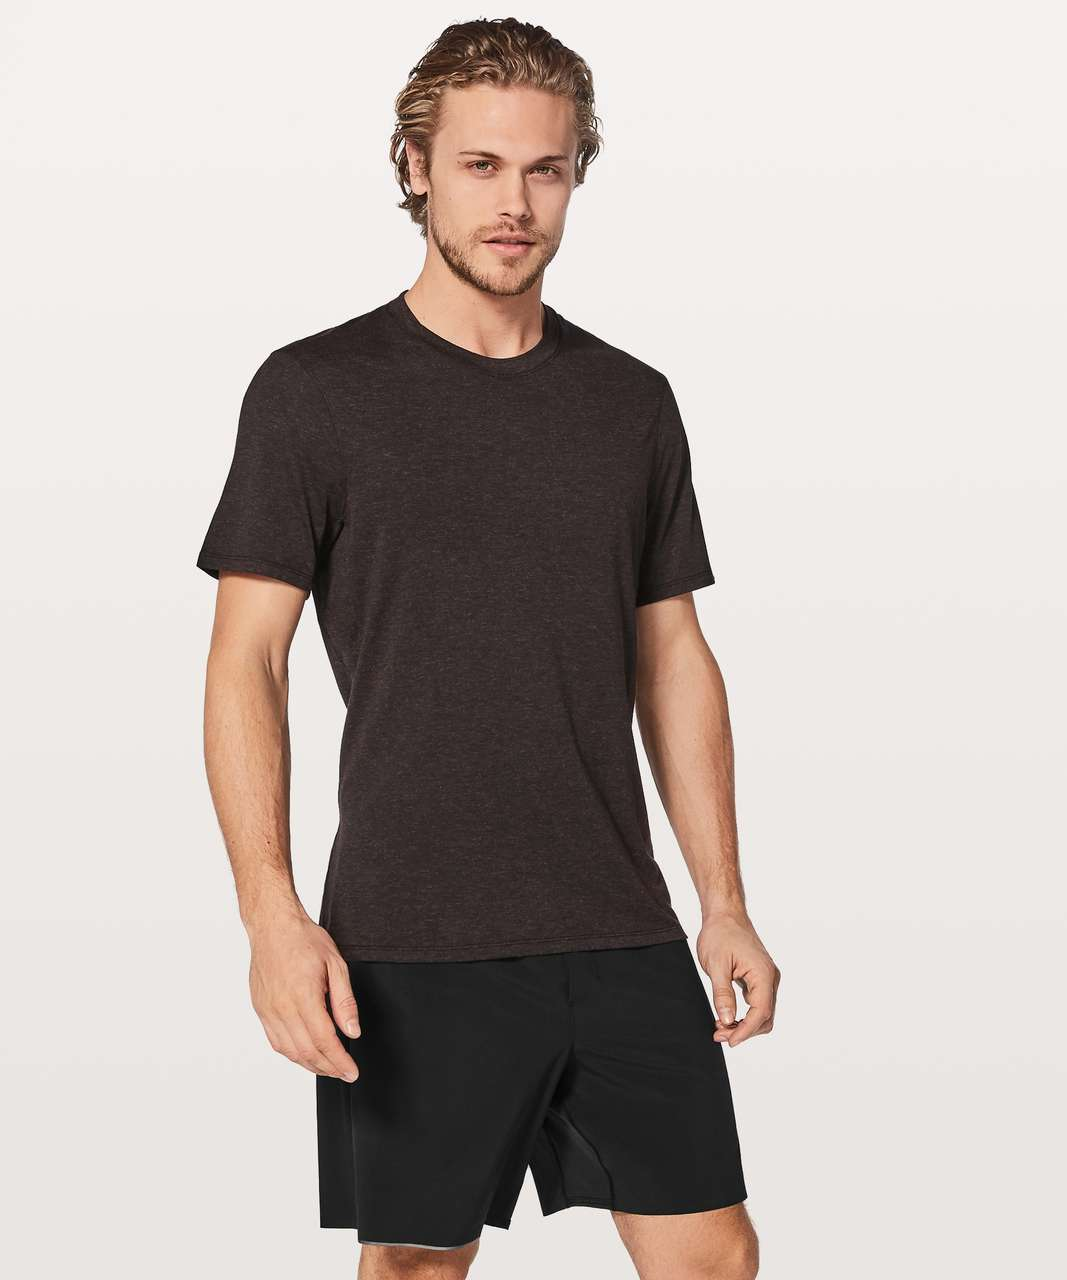 Lululemon Somatic Aero Short Sleeve - Deep Phantom